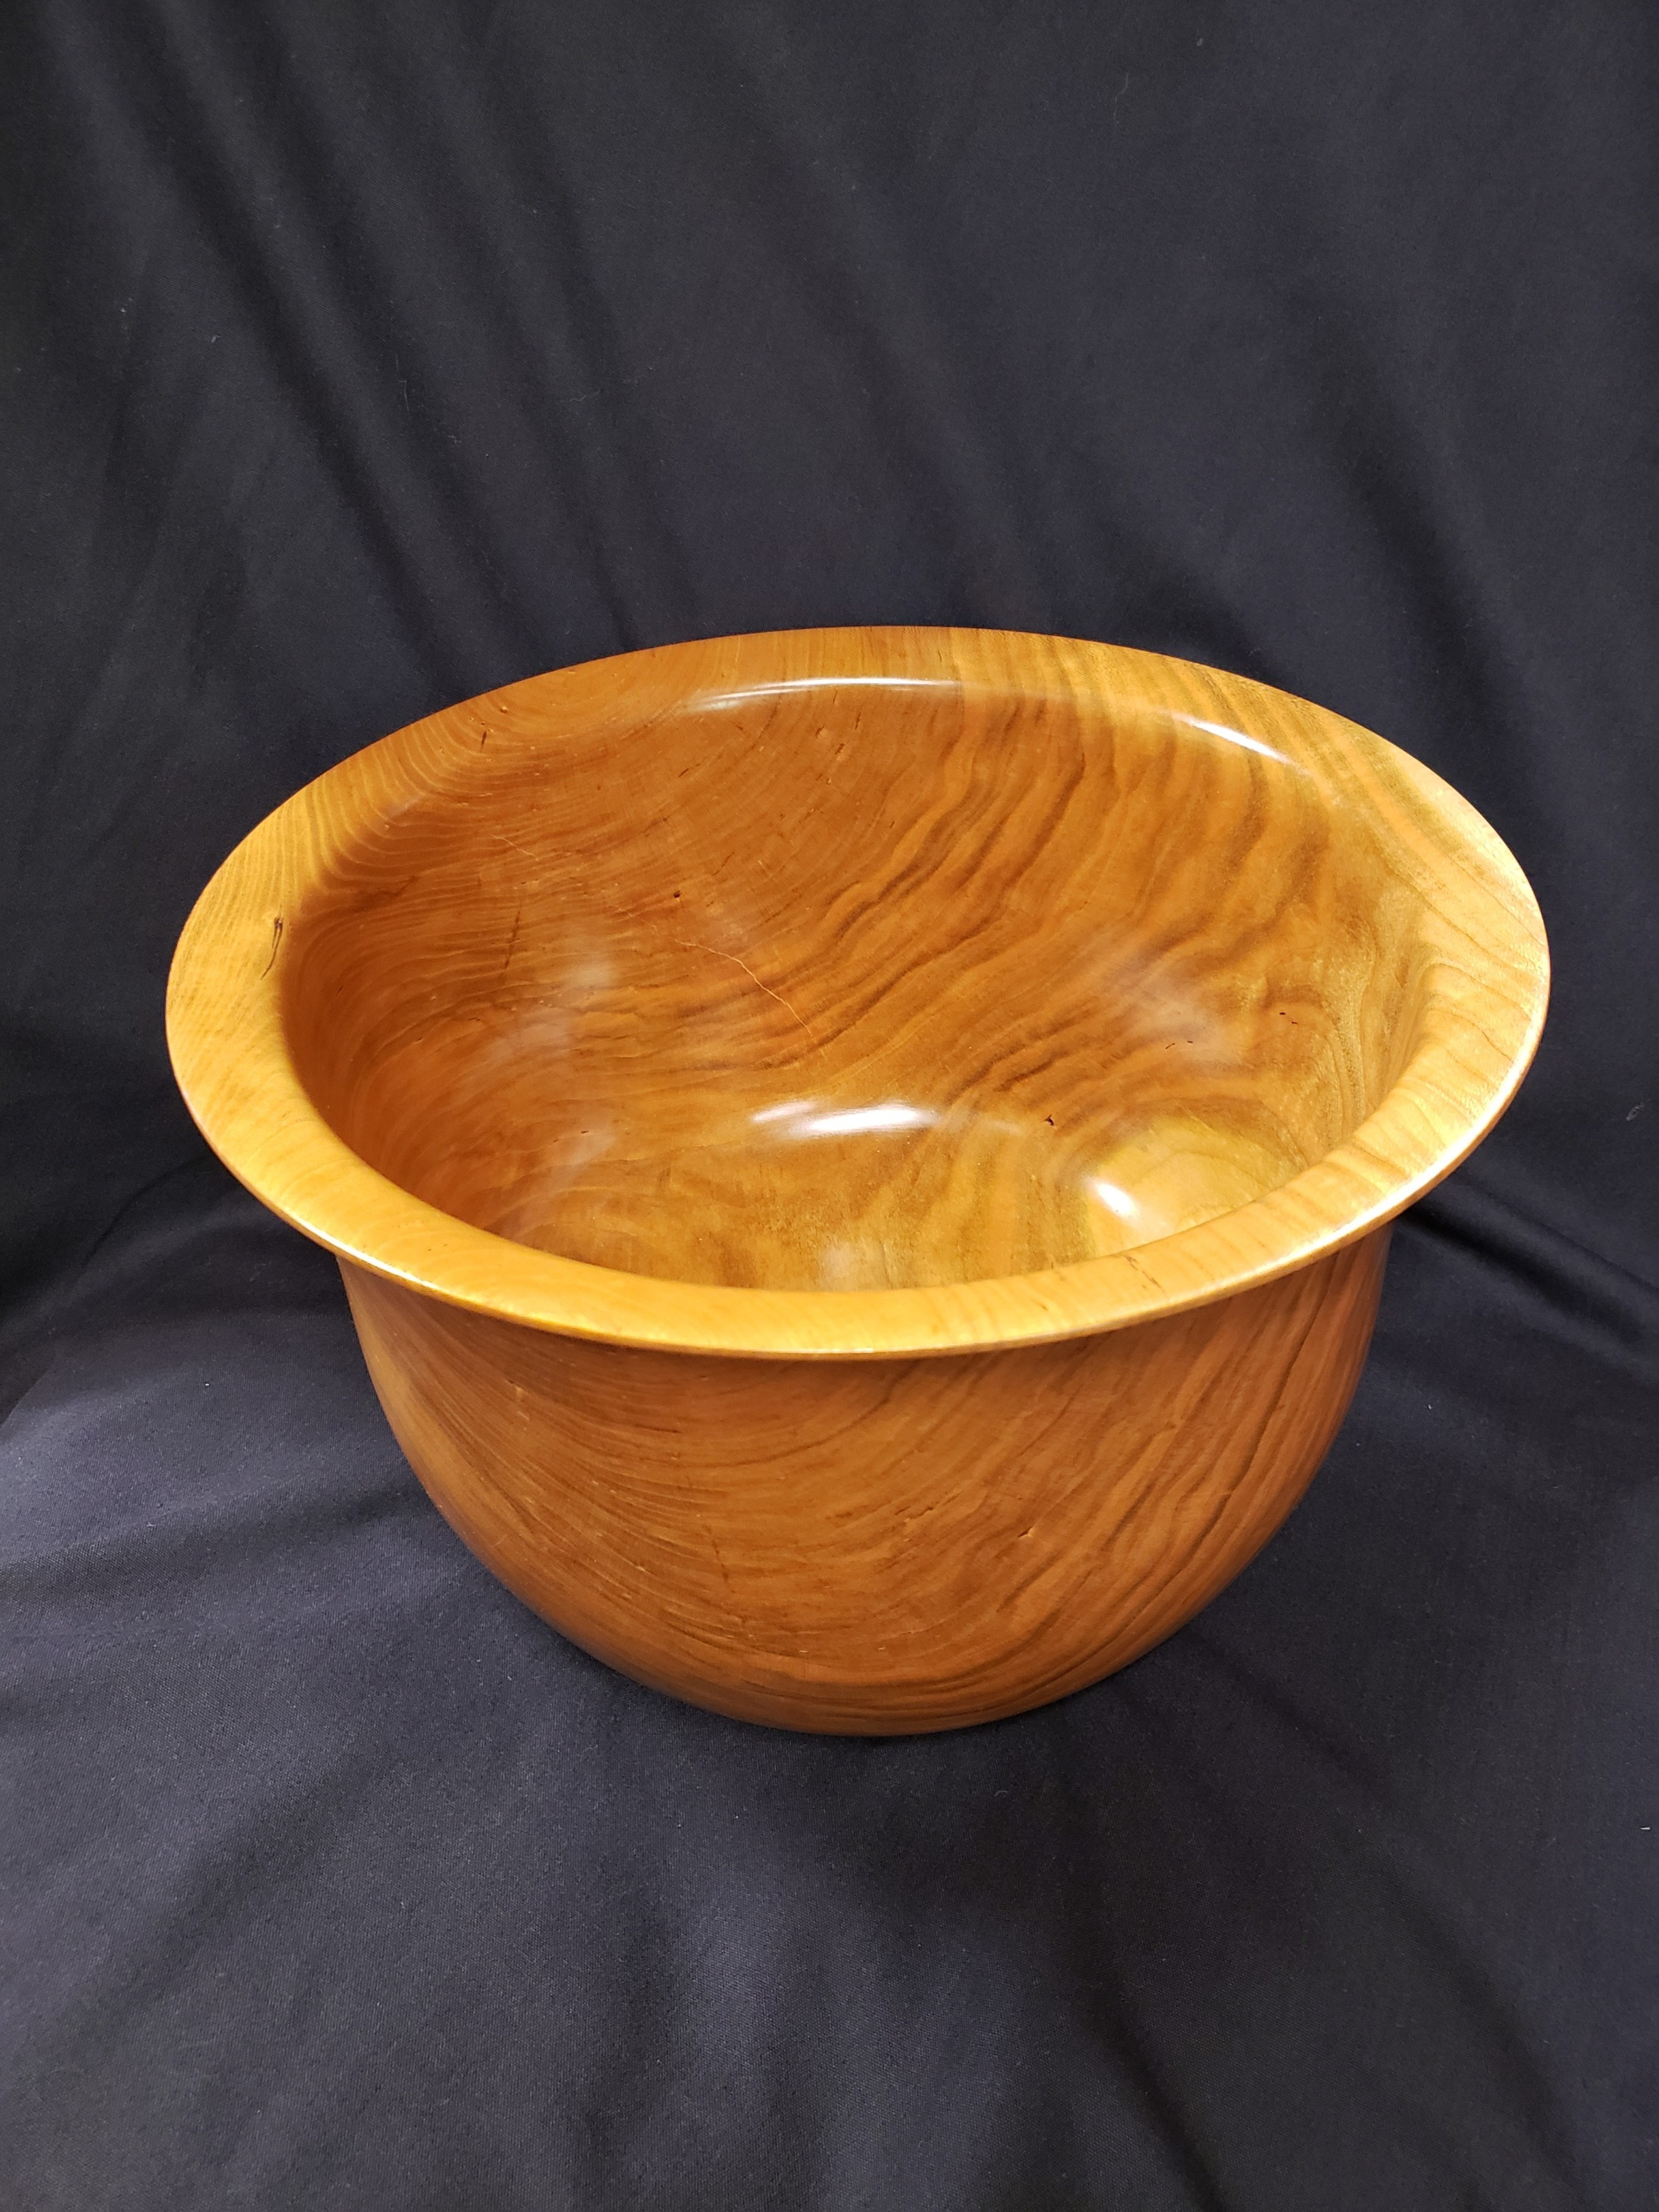 Large Cherry Bowl by Peter Mockridge